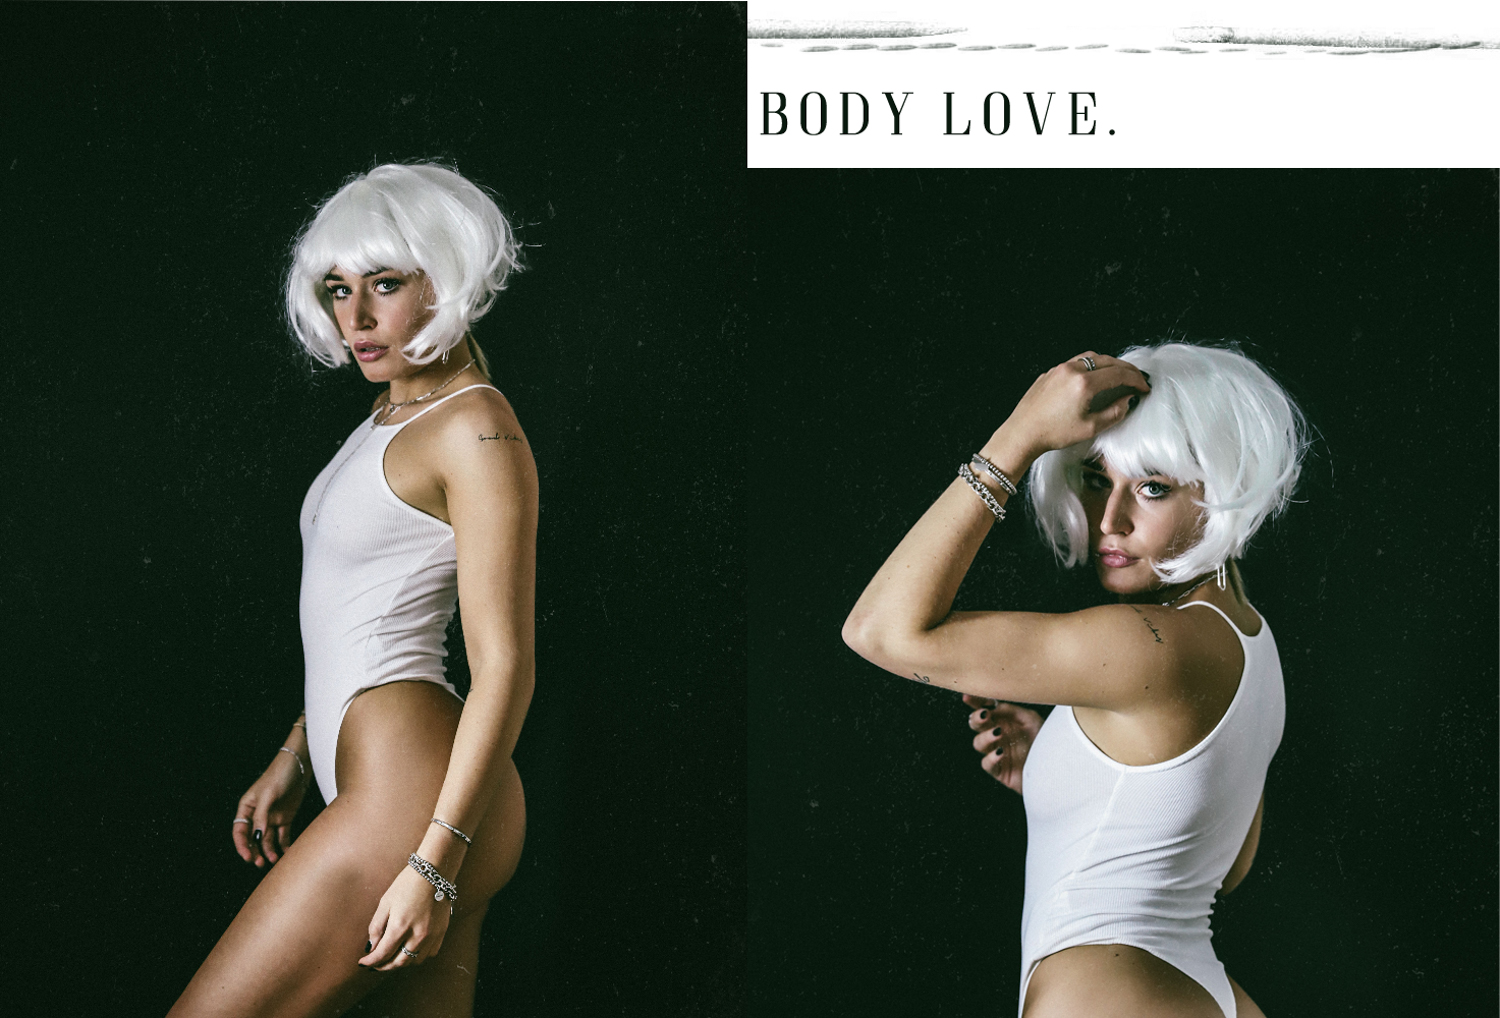 Lauralamode Blogger Body Inspiration Bodytalk Photography Fitness Körper Berlin Muenchen Fashionblogger3